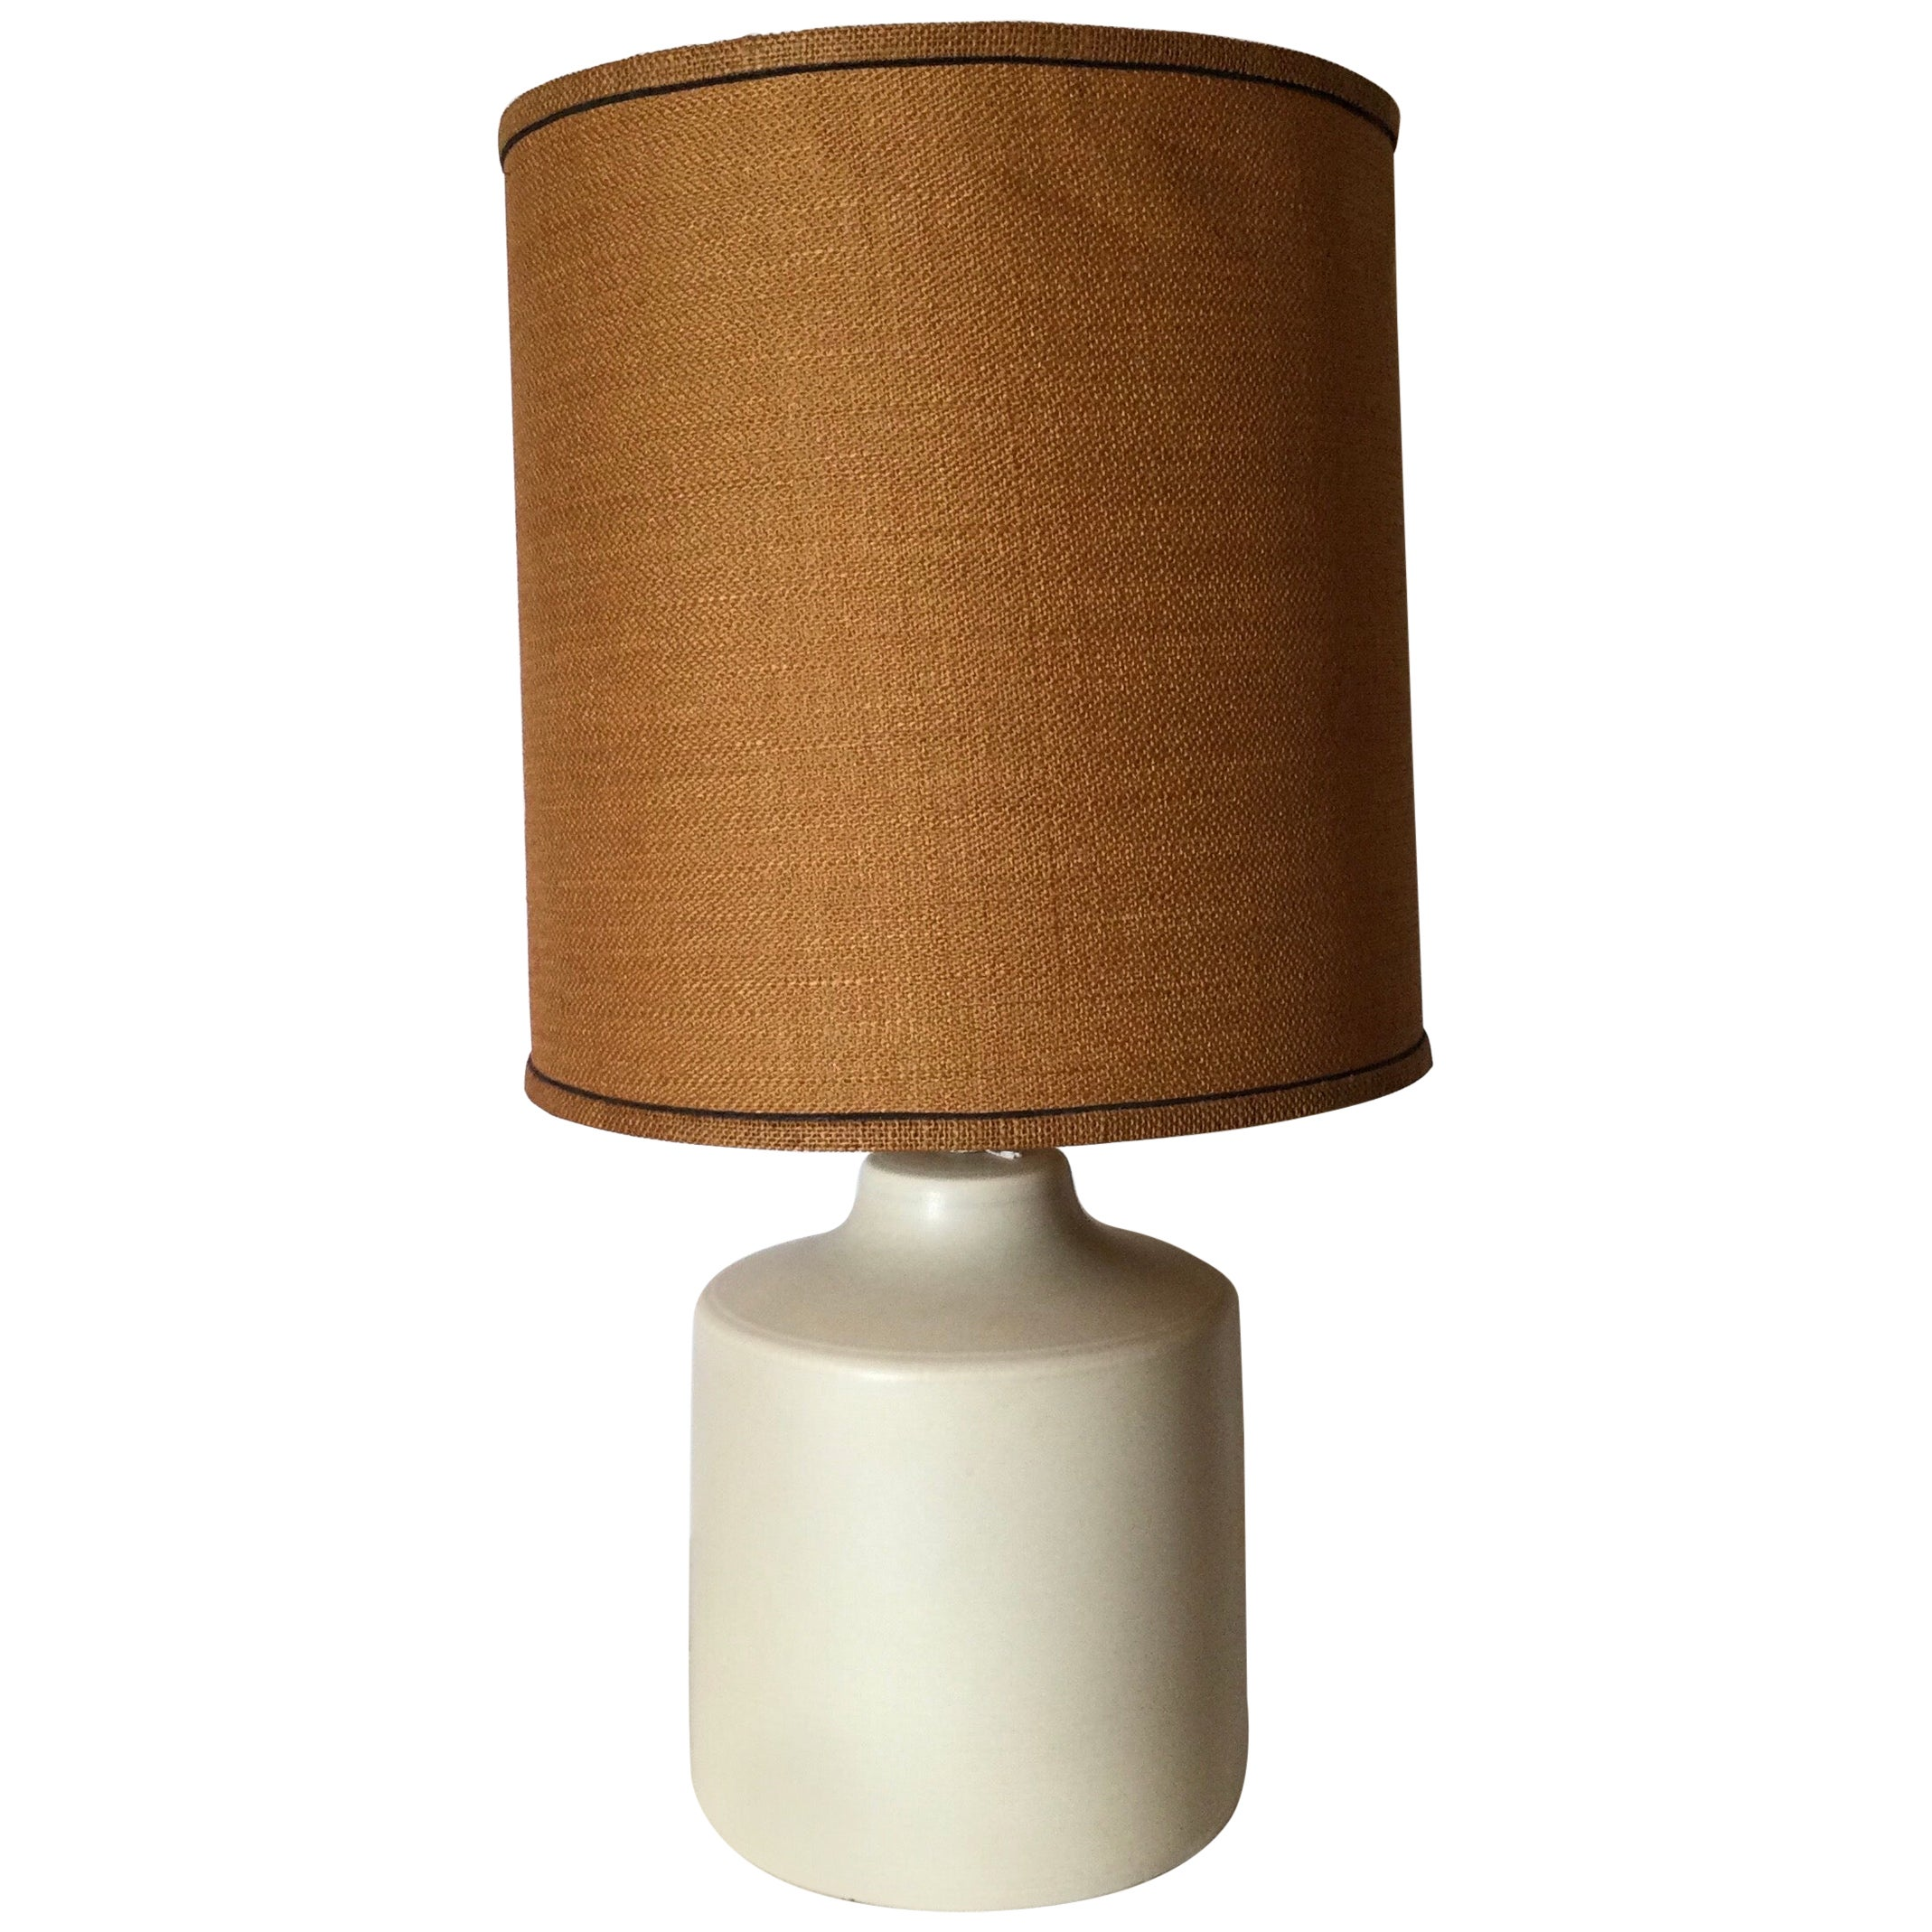 Midcentury White Ceramic Lotte and Gunnar Bostlund Lamp